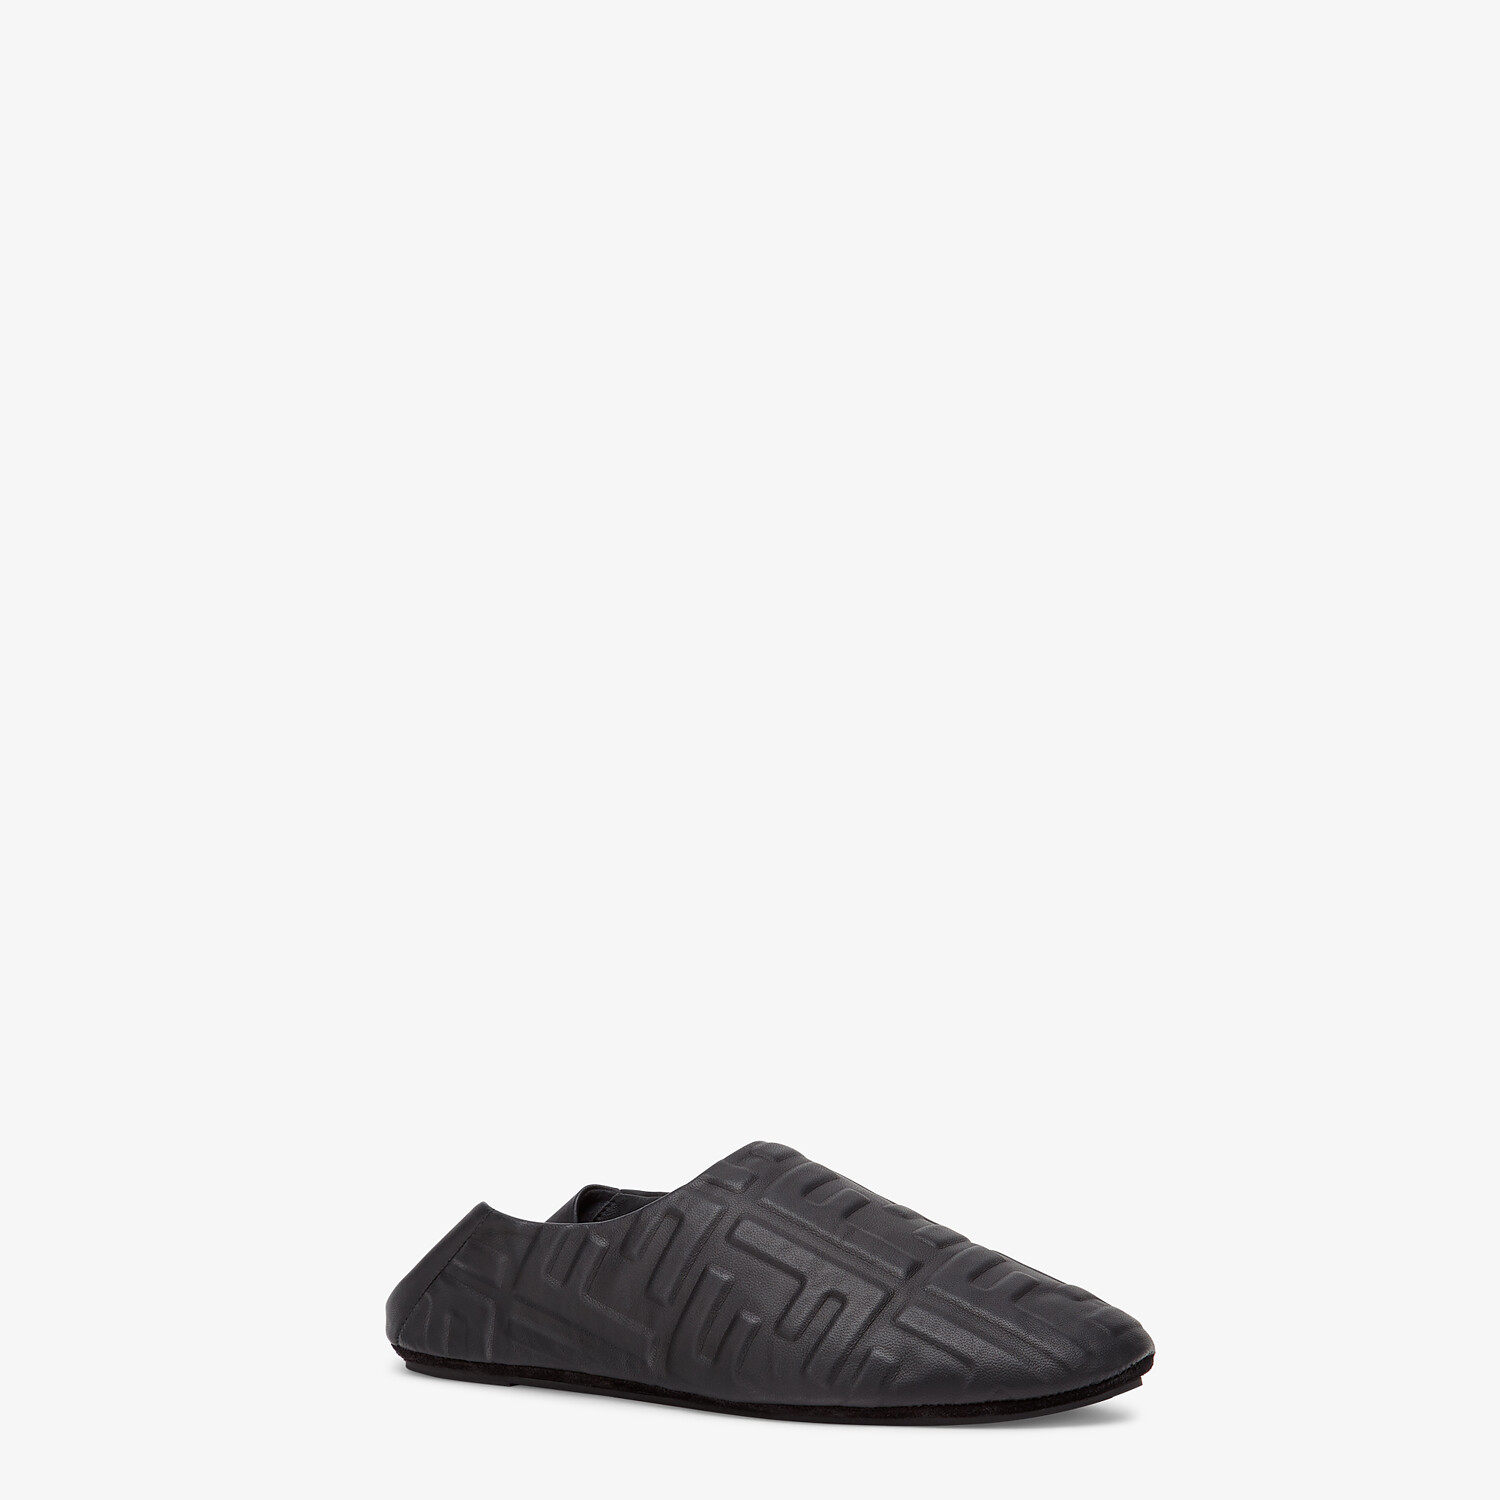 FENDI SIGNATURE - Black nappa leather slippers - view 2 detail